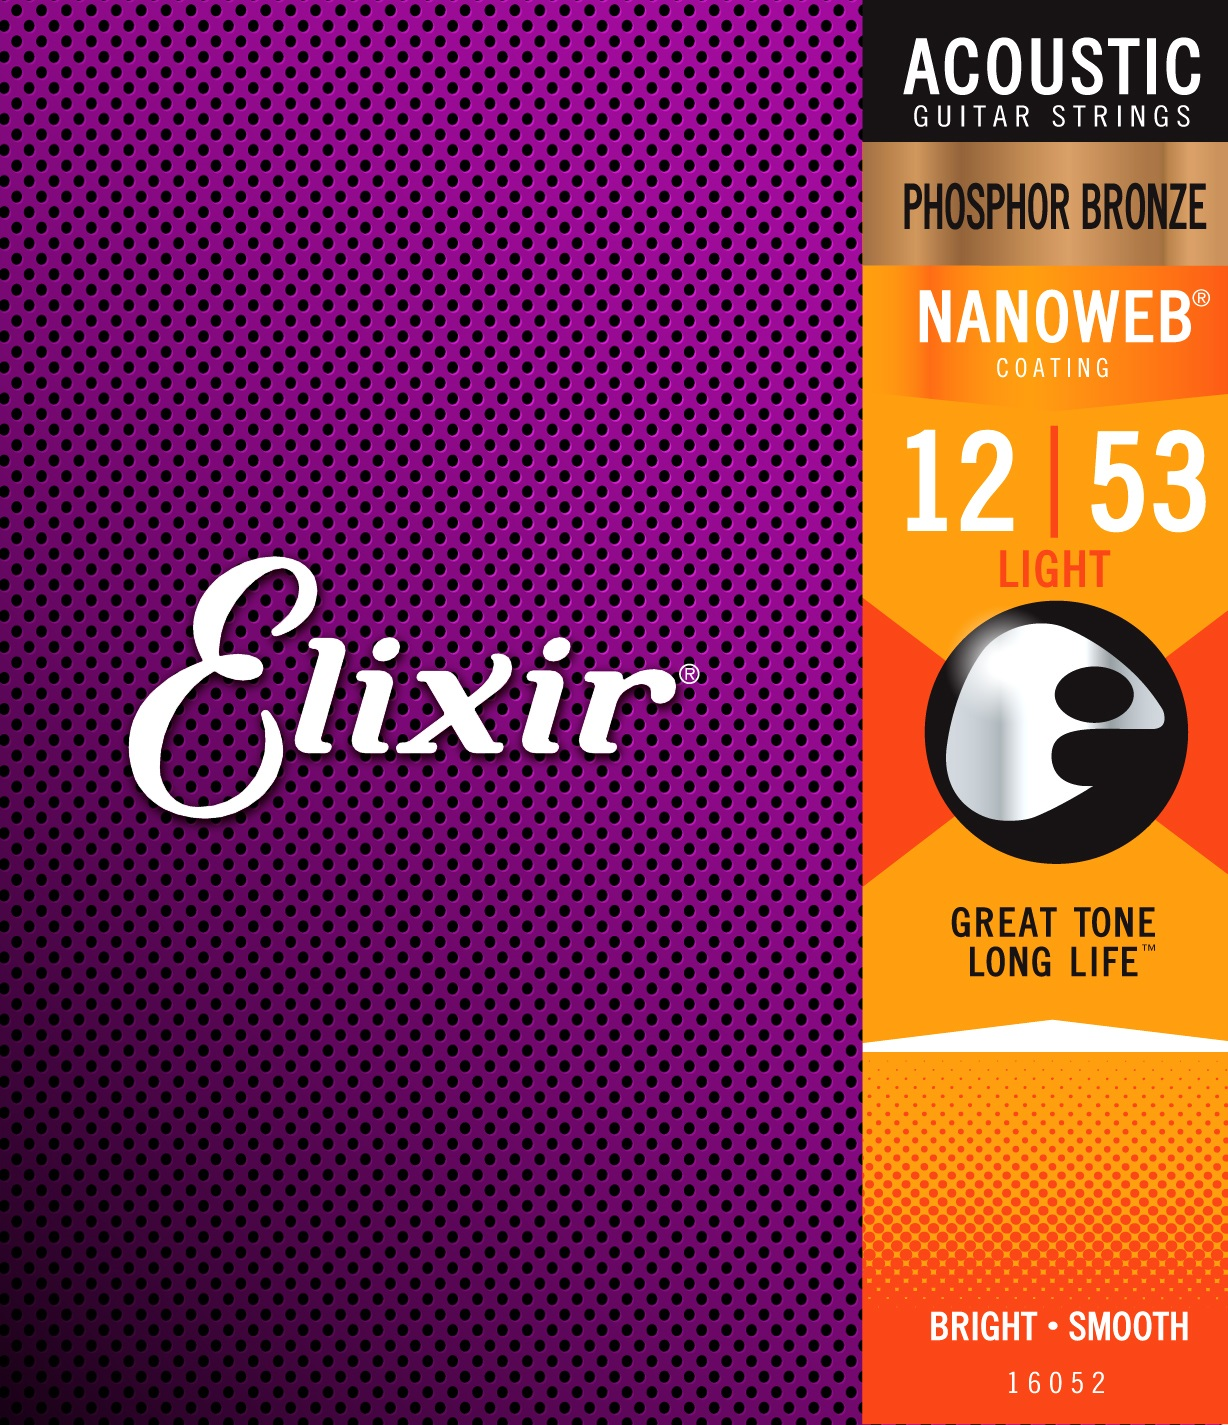 Elixir Nanoweb Phosphor Bronze Light